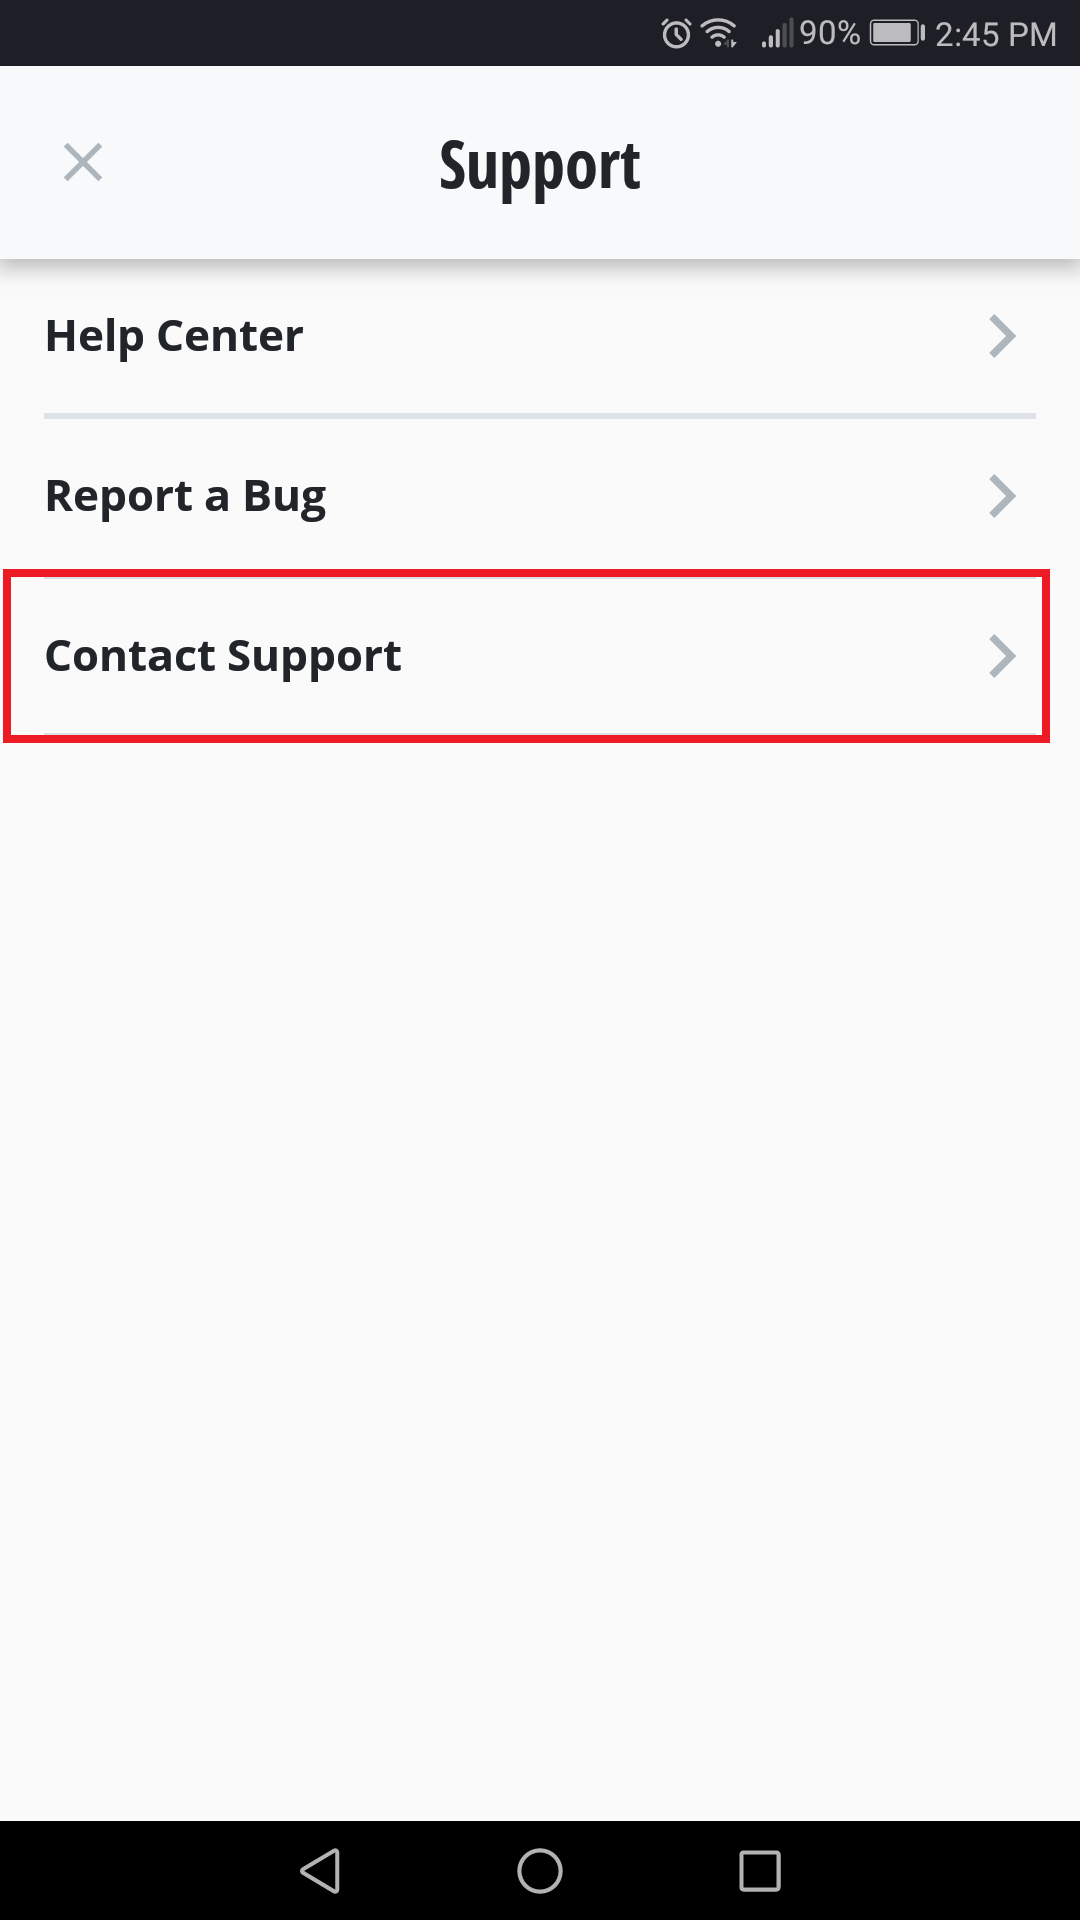 Vypr_App _-_ Support_Menu _-_ Contact_Support_Selected.png